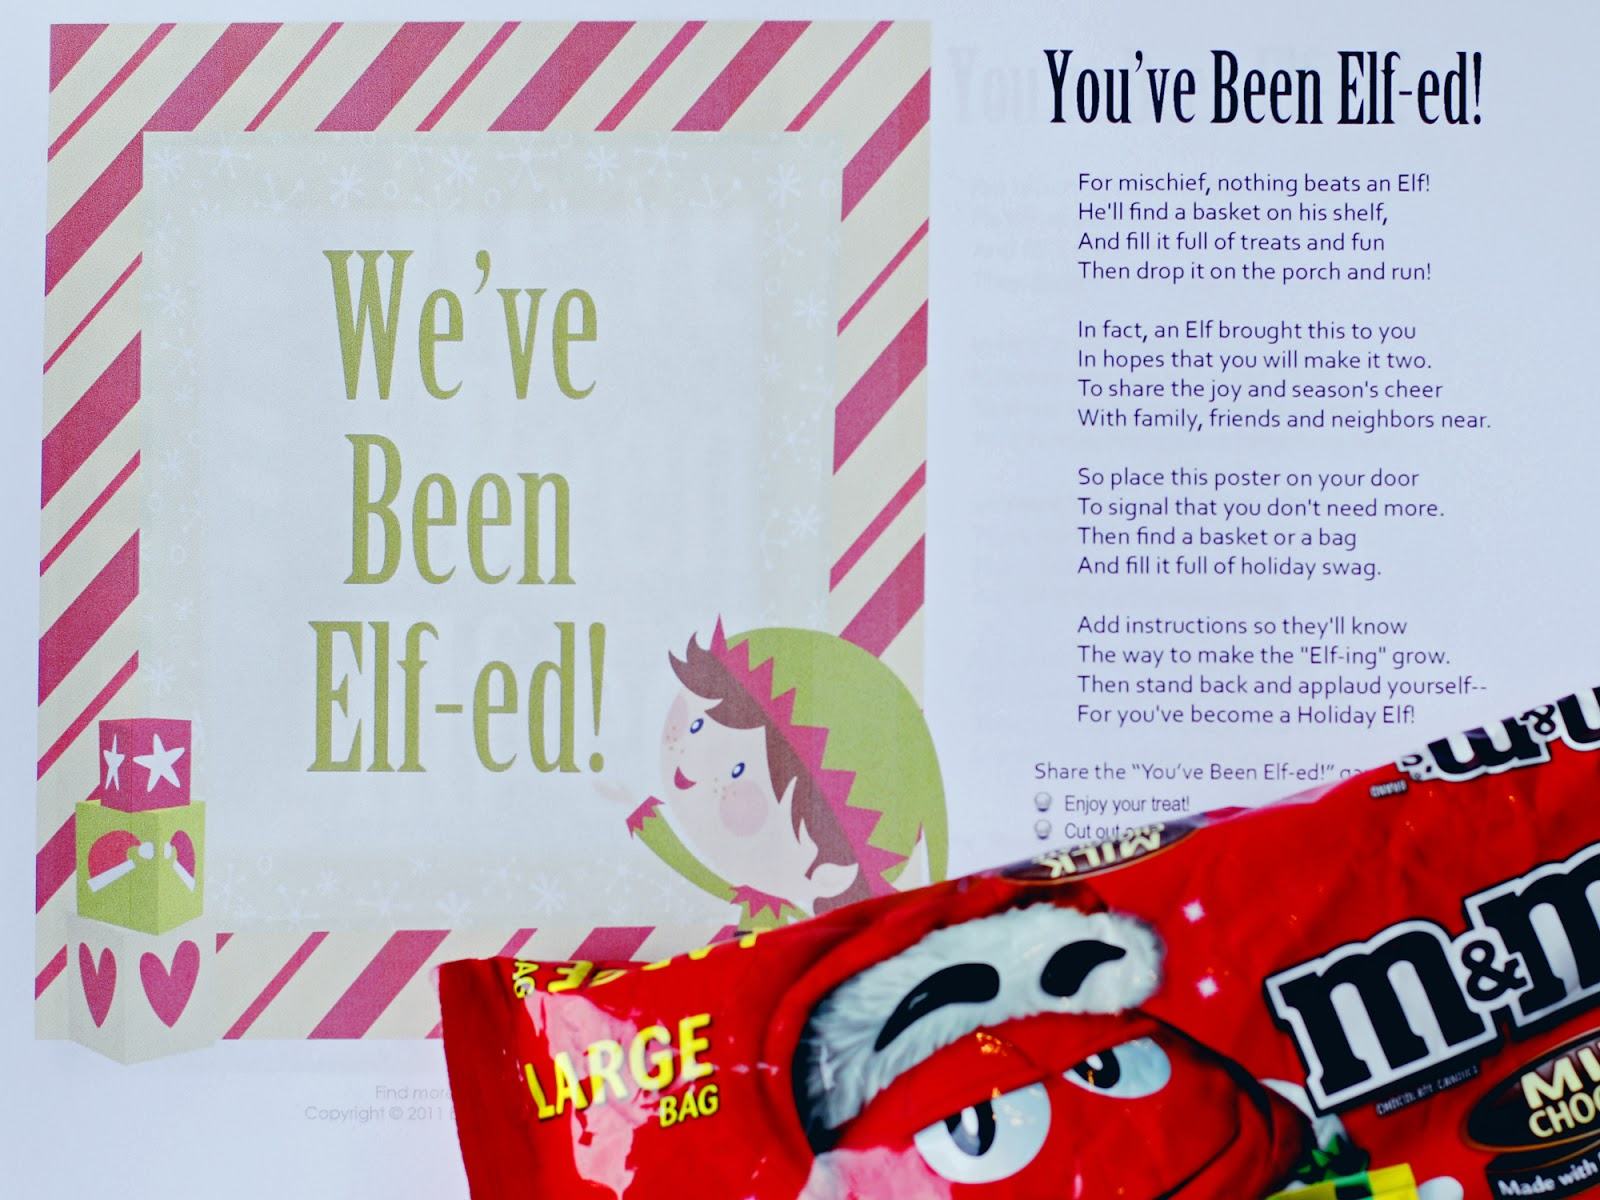 image about You've Been Elfed Free Printable referred to as Shyloh Belnap: December 2015